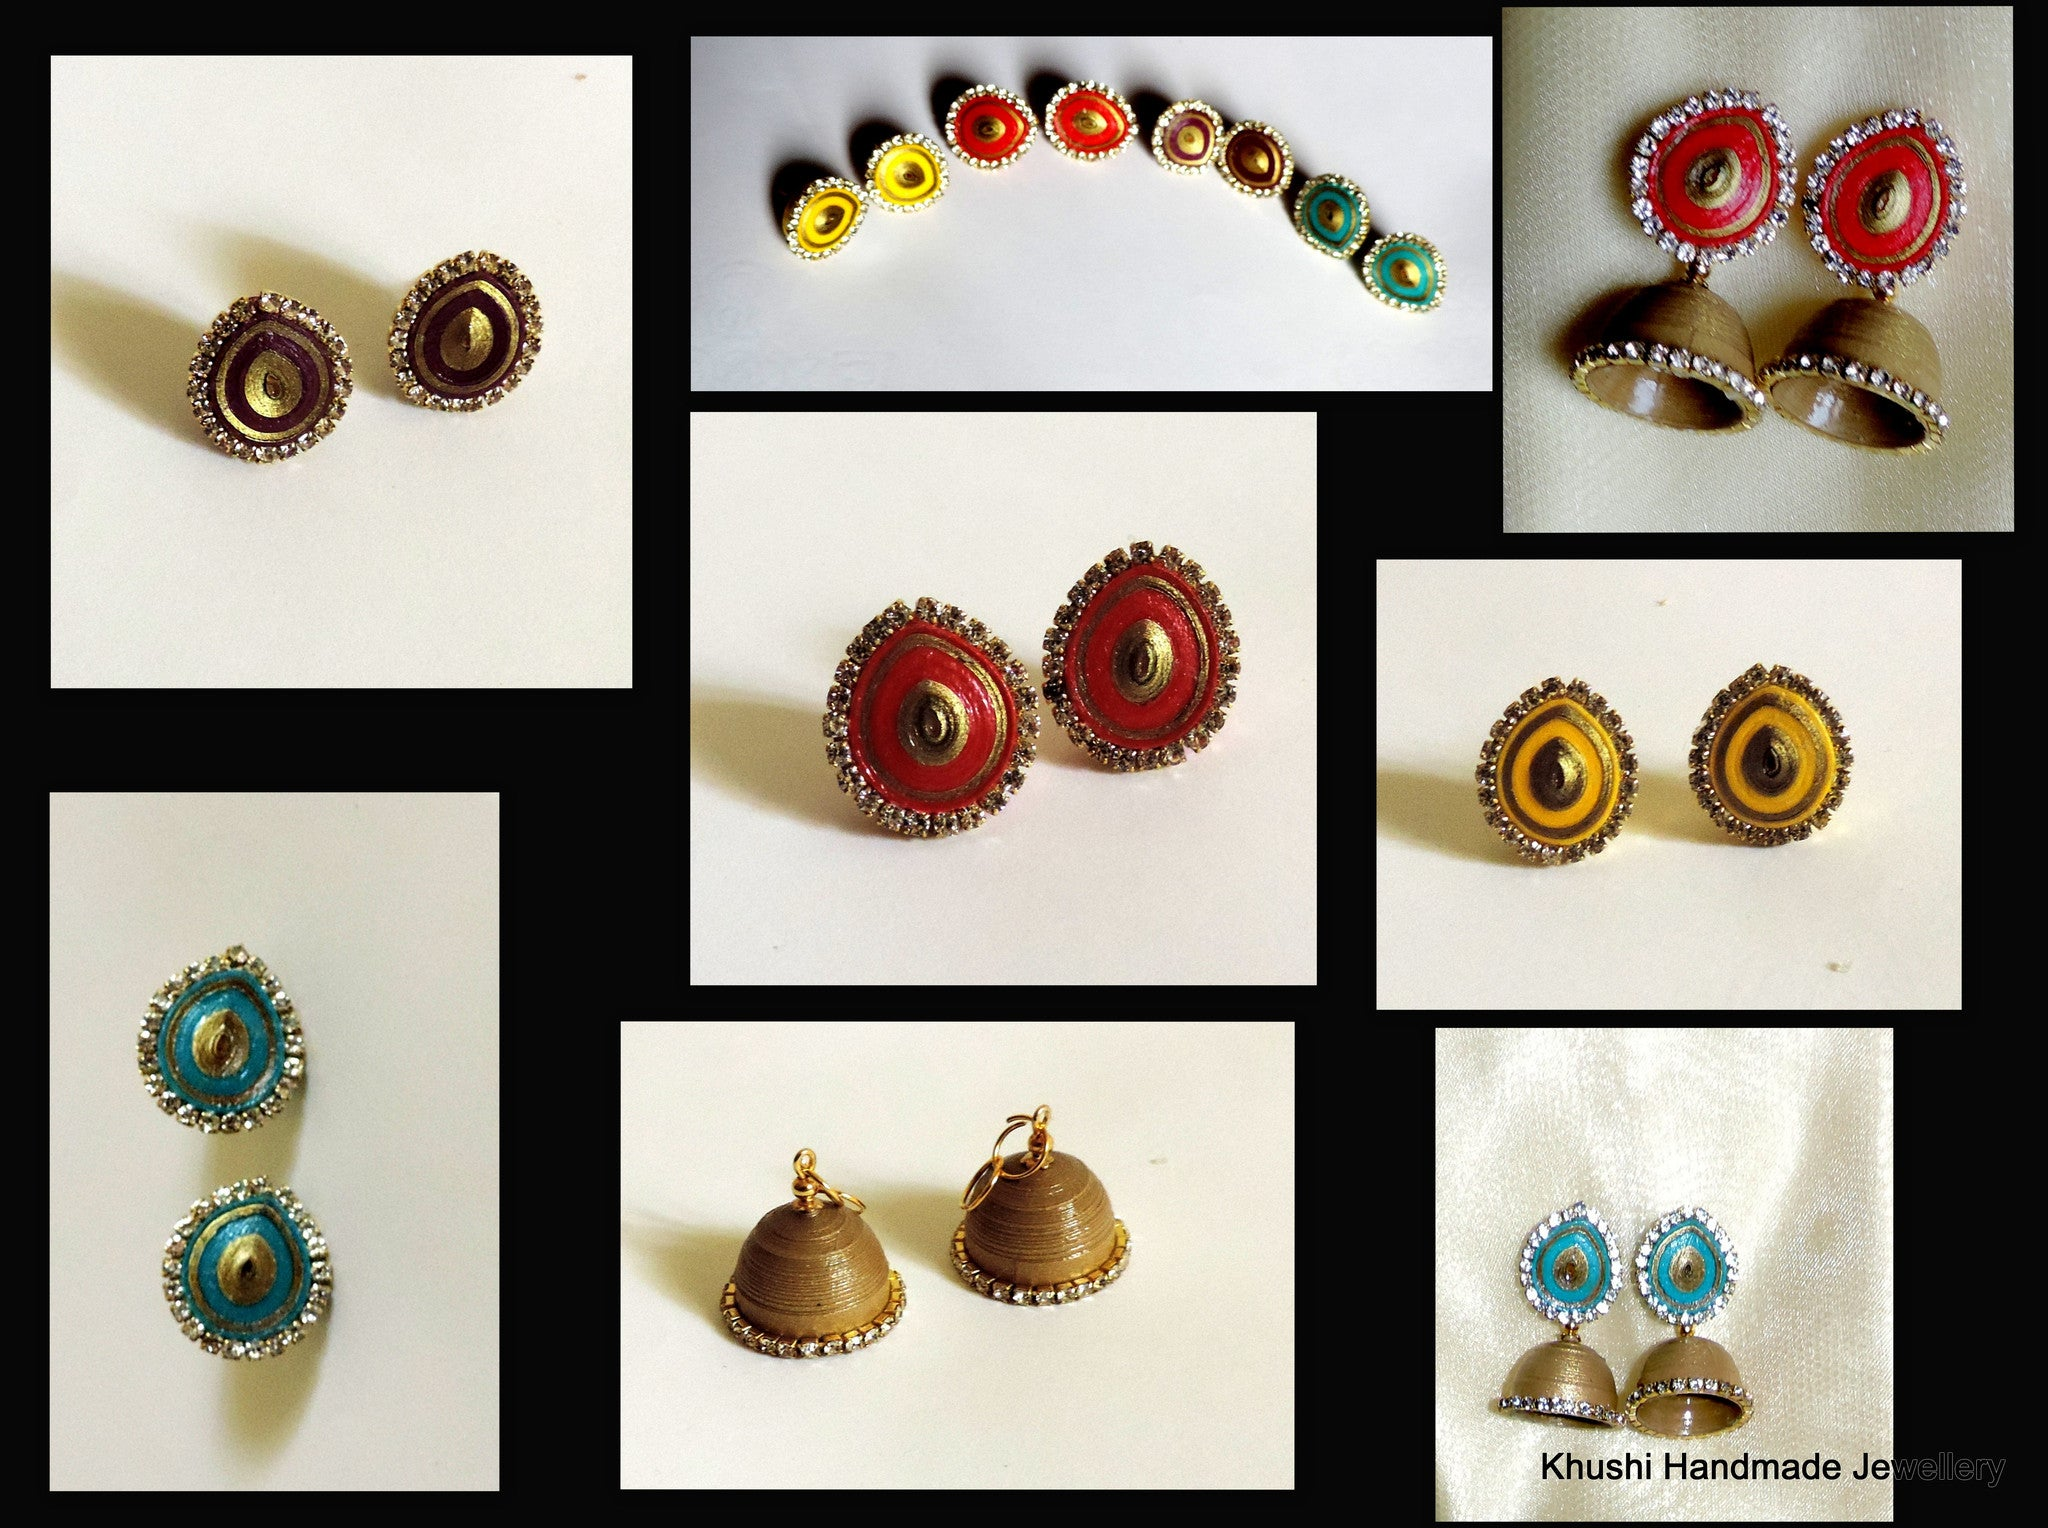 Interchangeable Stone edged Jhumkas - Khushi Handmade Jewellery